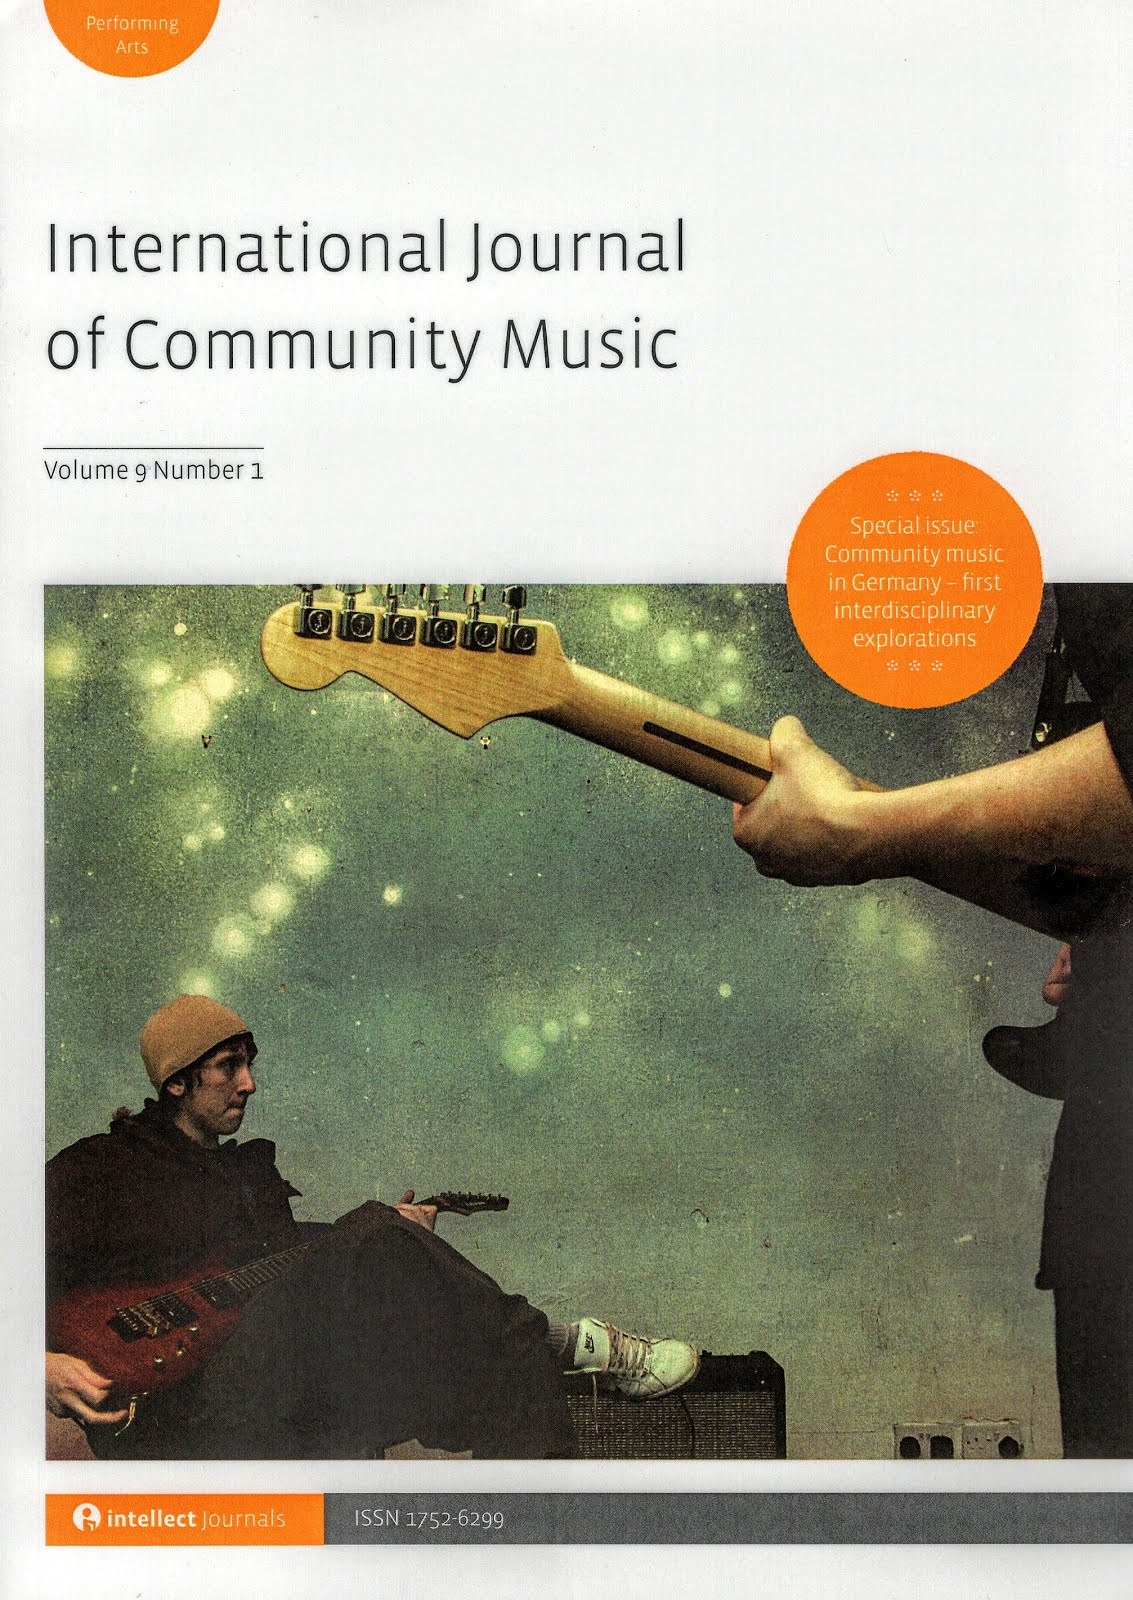 Special Issue about Community Music in Germany